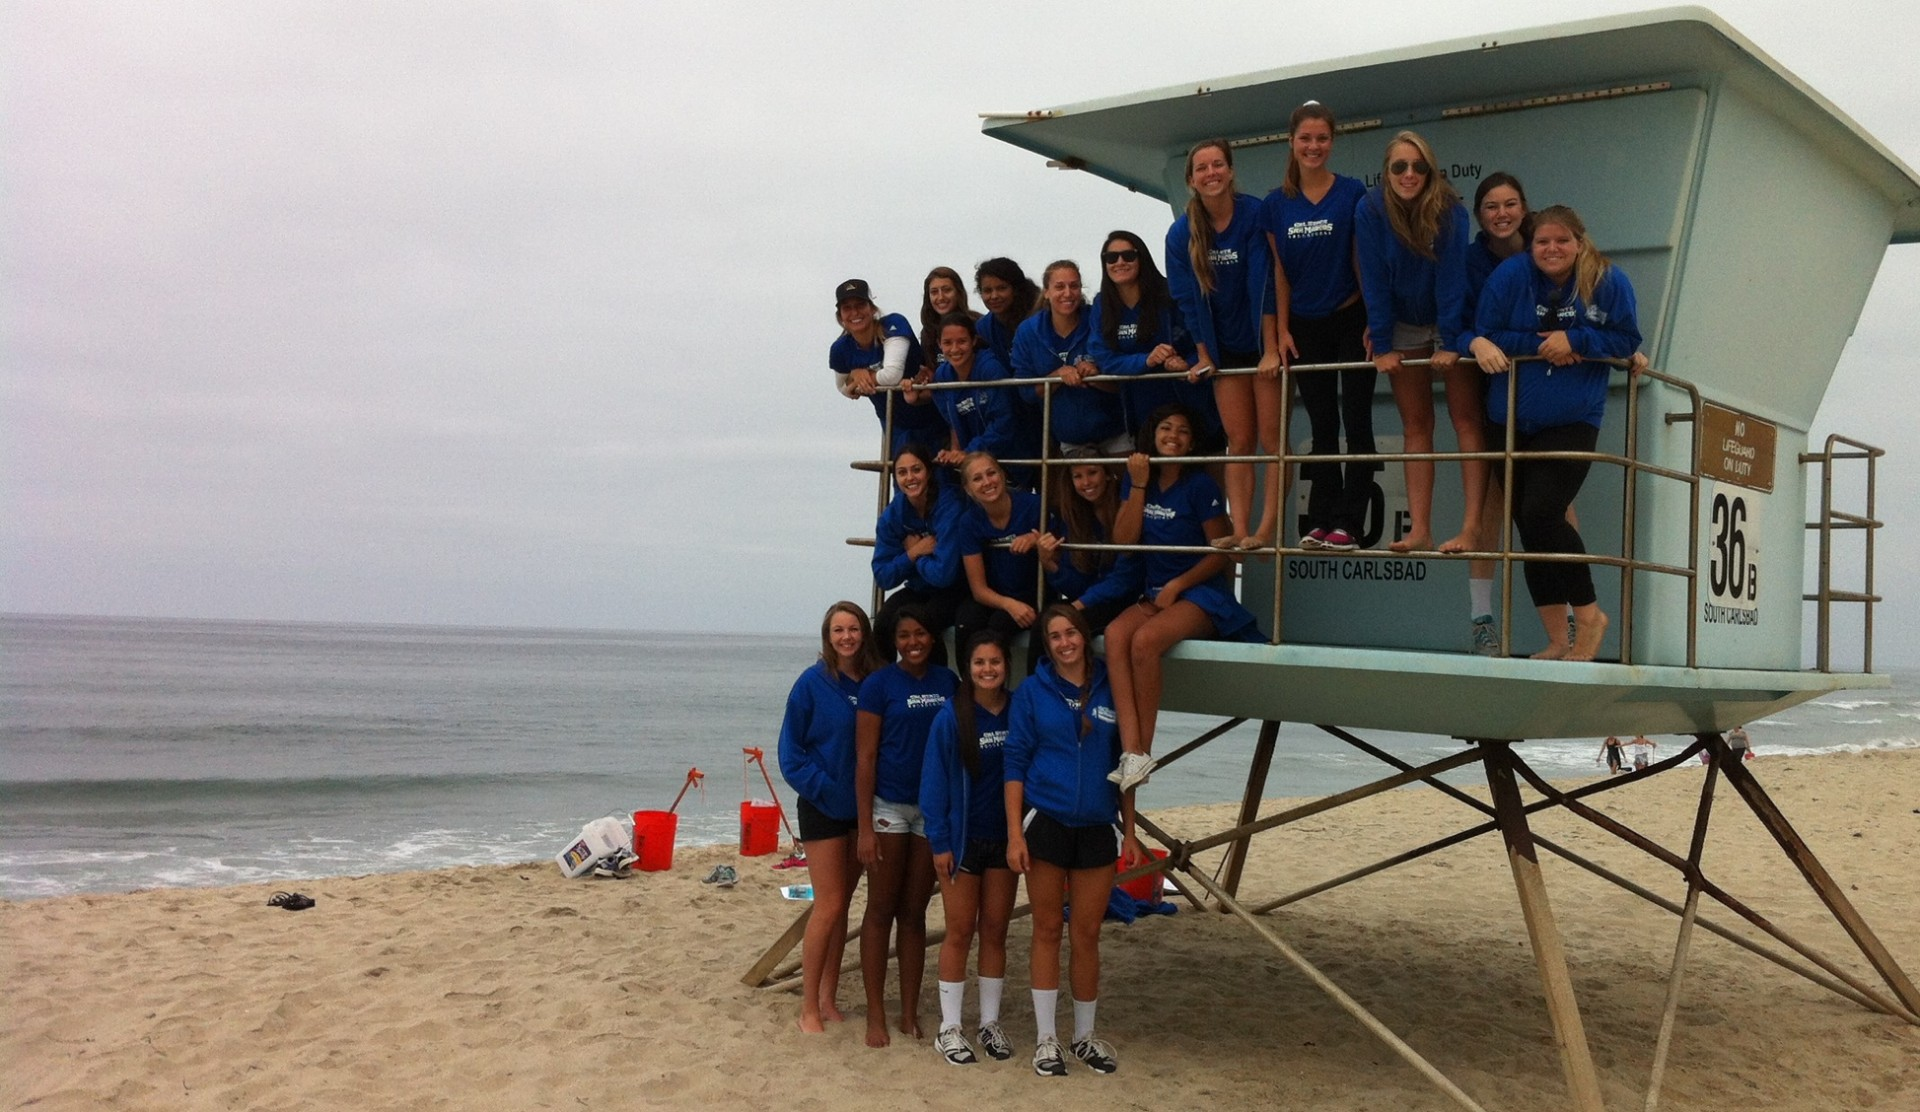 Women's Volleyball Team participates in Carlsbad beach clean up